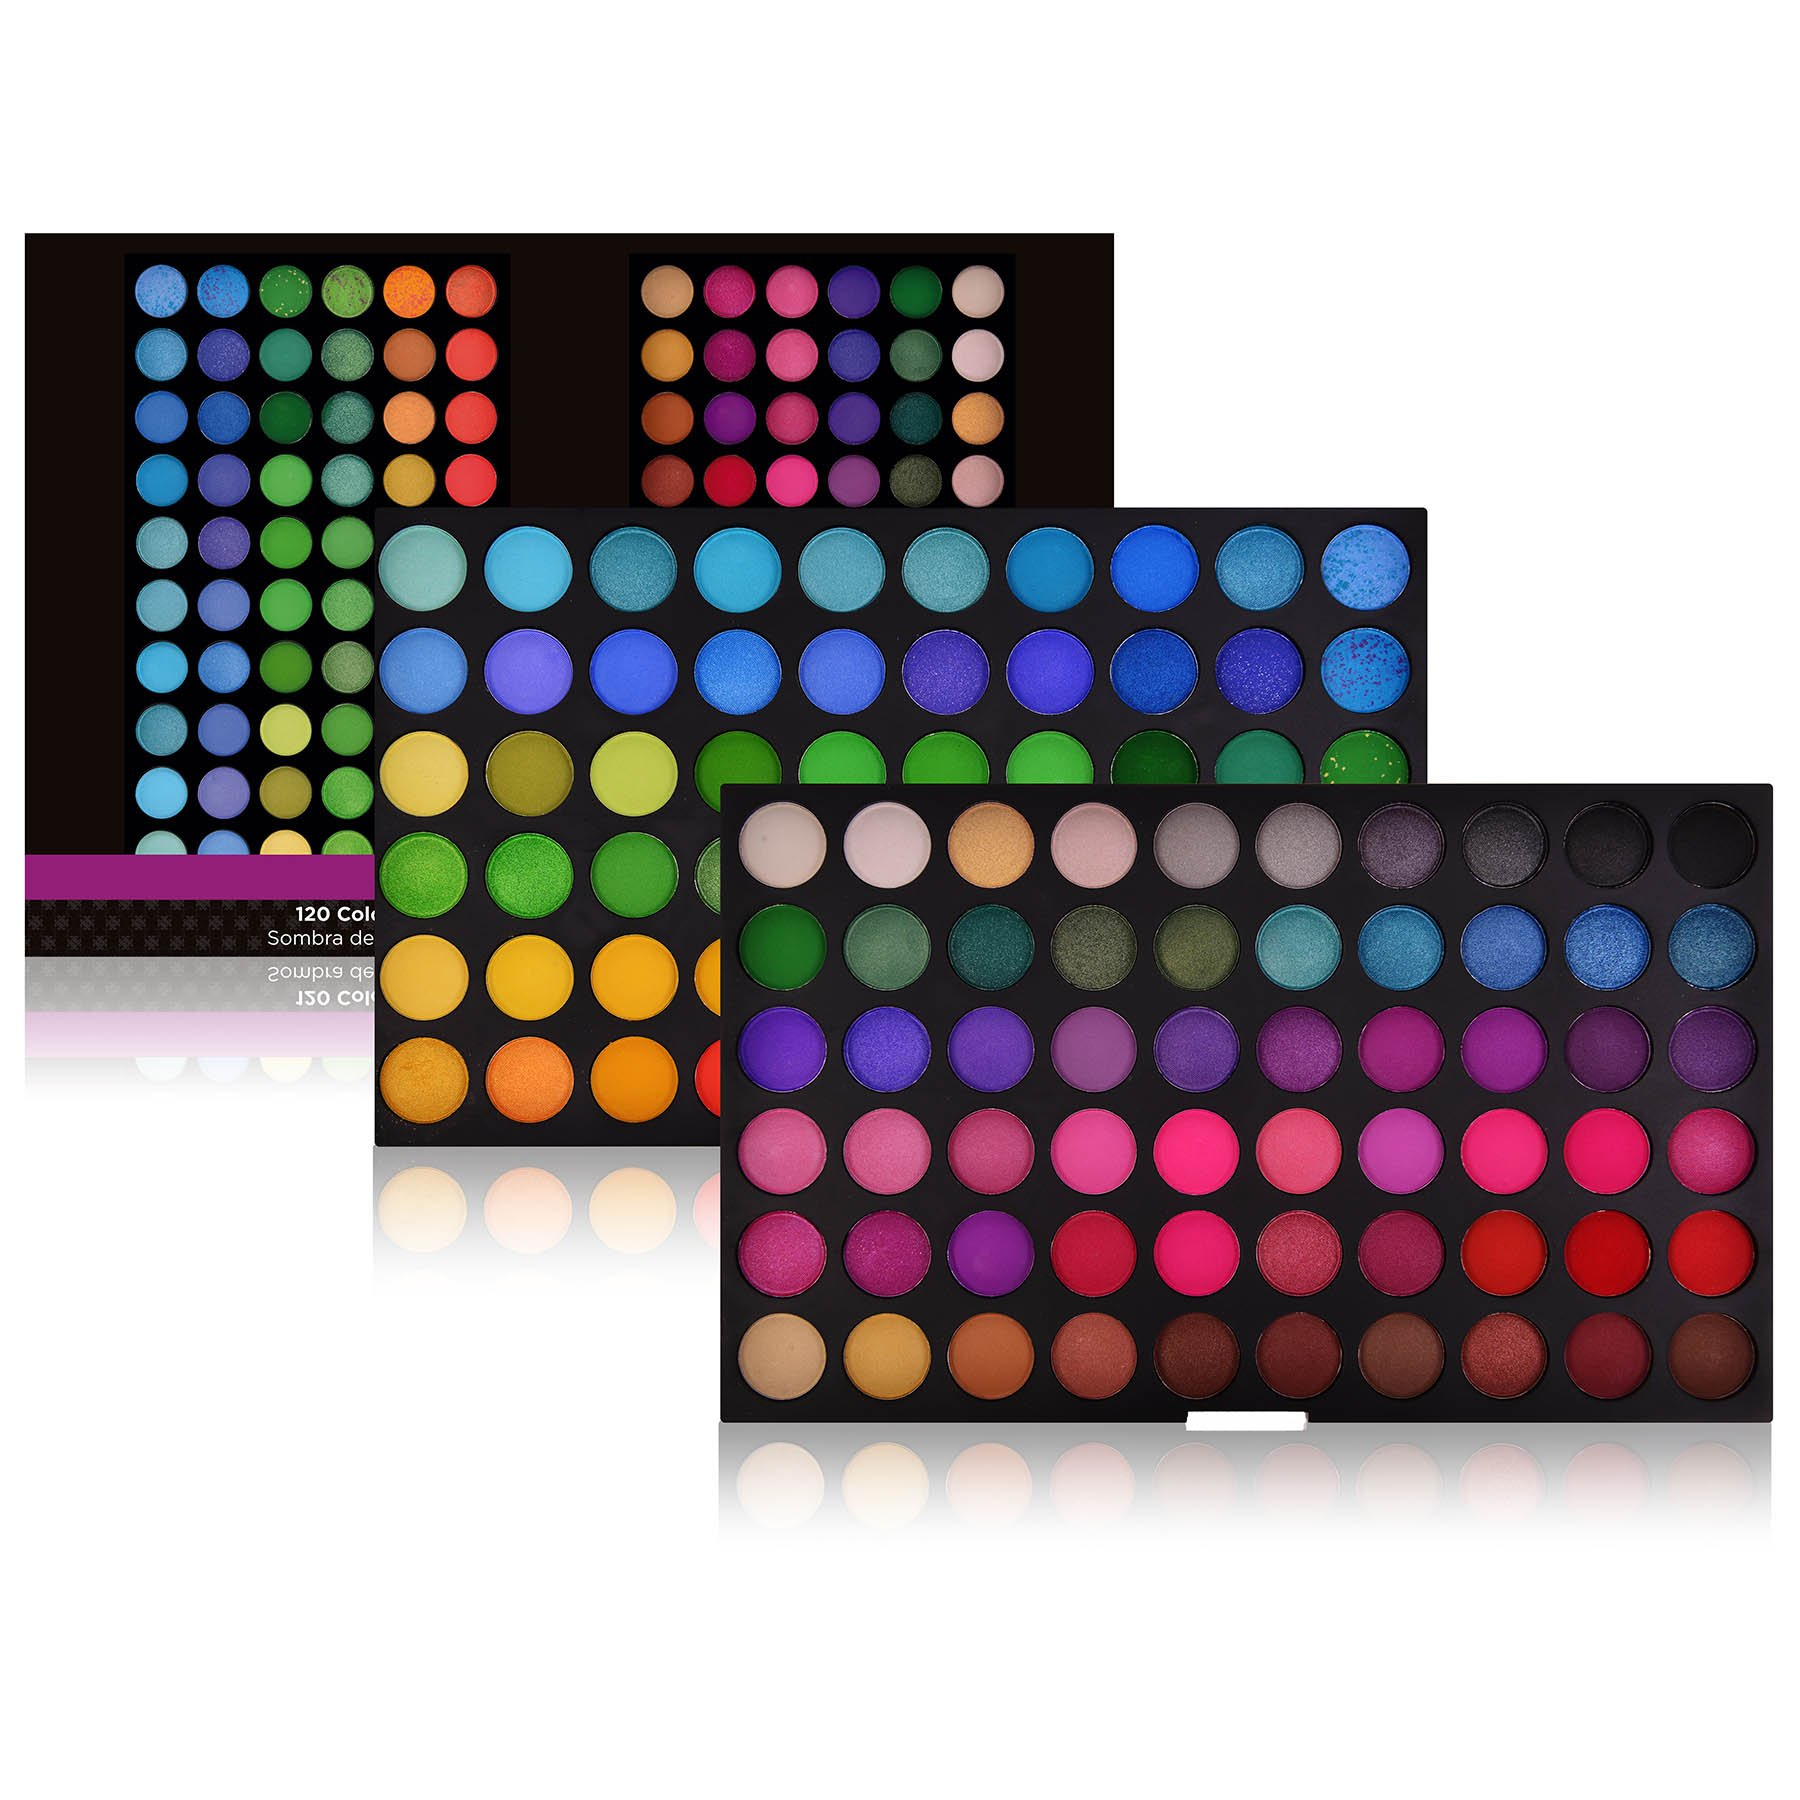 SHANY Cosmetics SHANY Eyeshadow Palette, Bold and Bright Collection, 120 Vivid Color, 13 Ounce